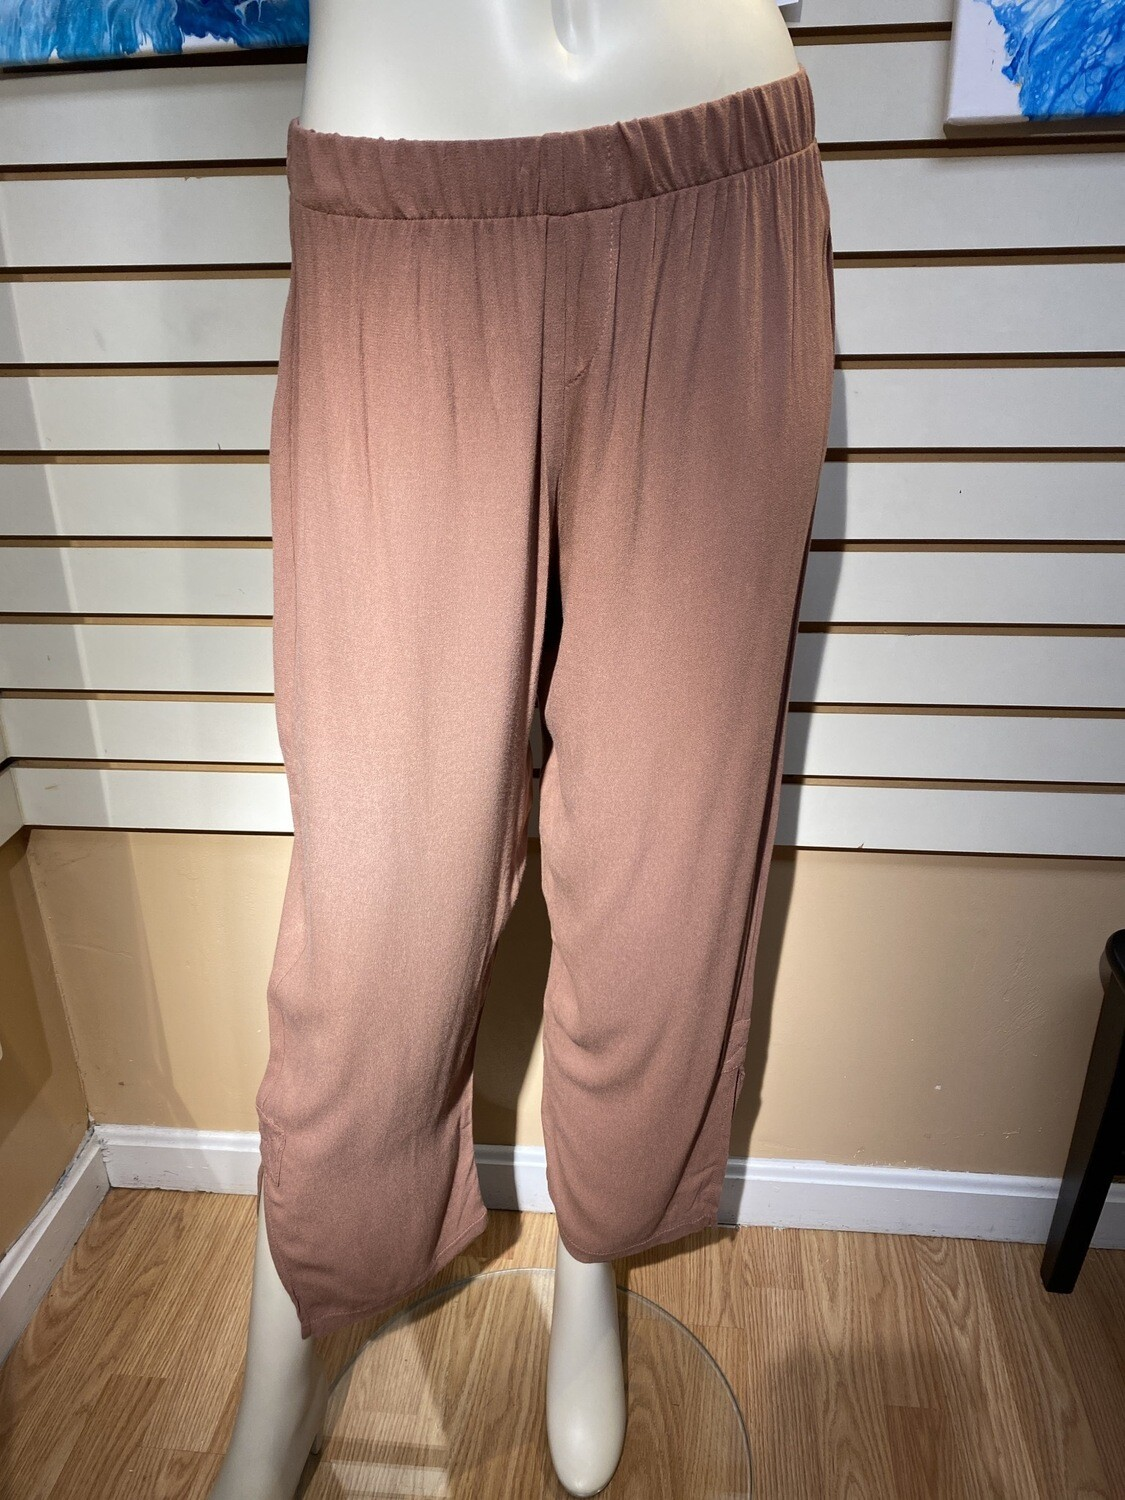 Major Deal Inside Out. Made In USA. Softest Of Crepe Pant. Nice Ankle Slit. So Soft. Small Dark Blush